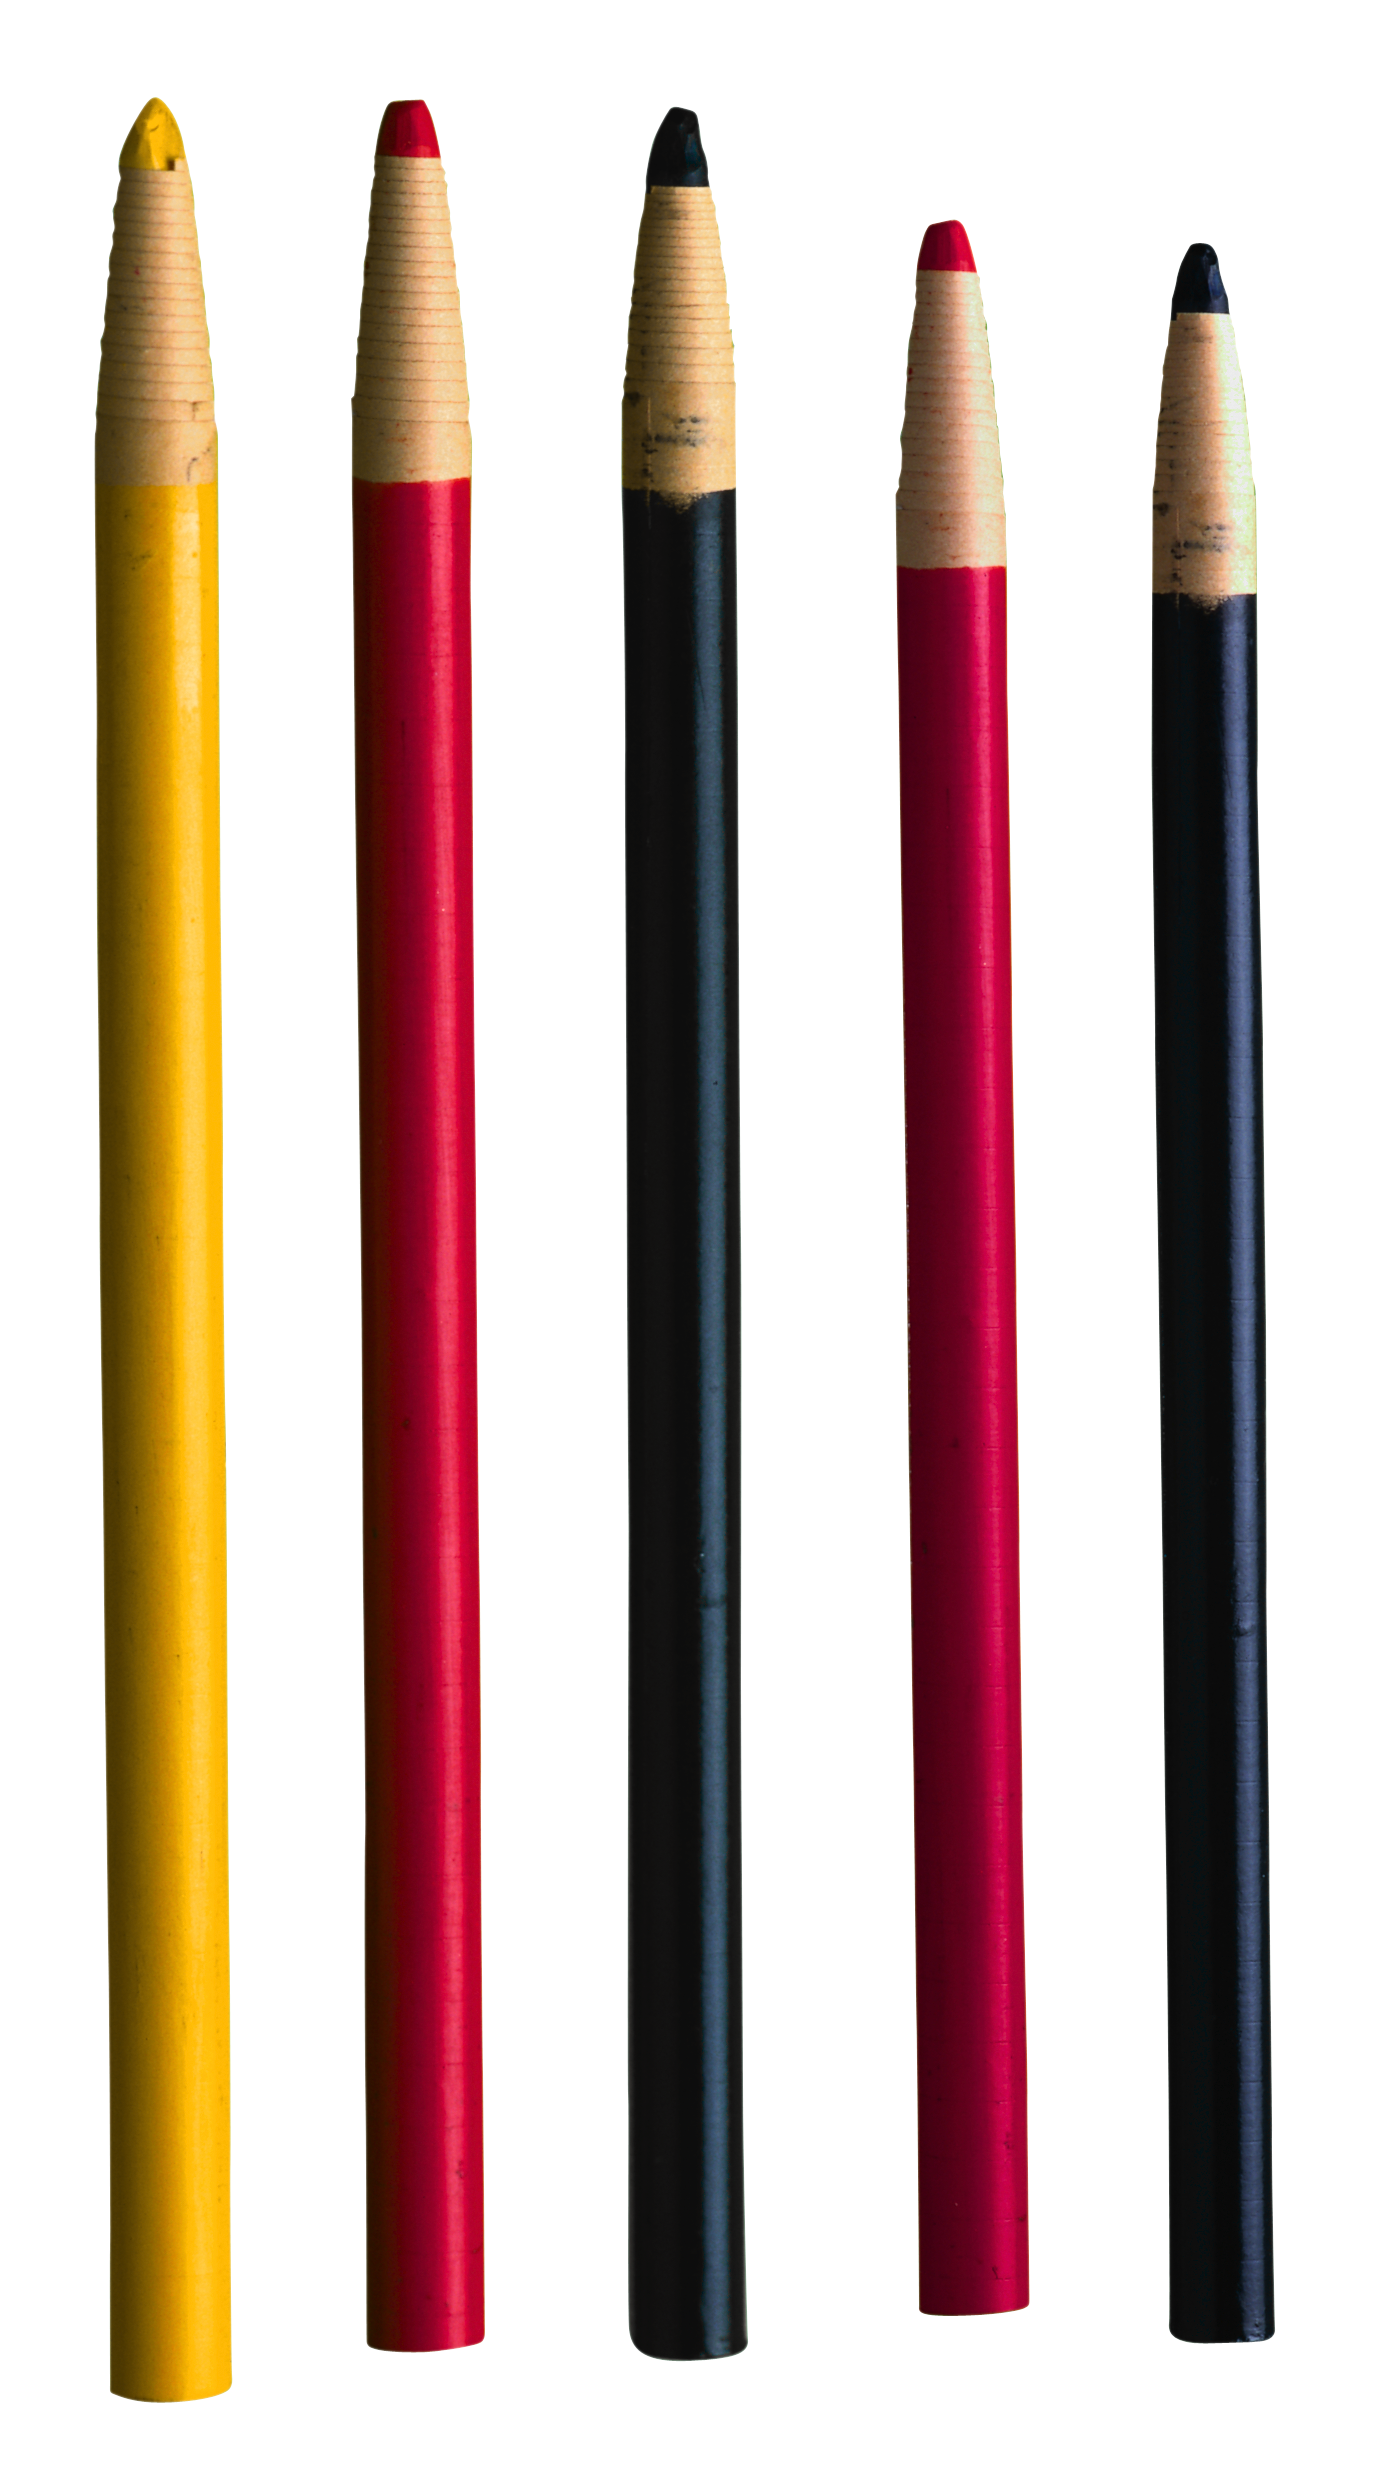 Grab and download Pencil Icon PNG